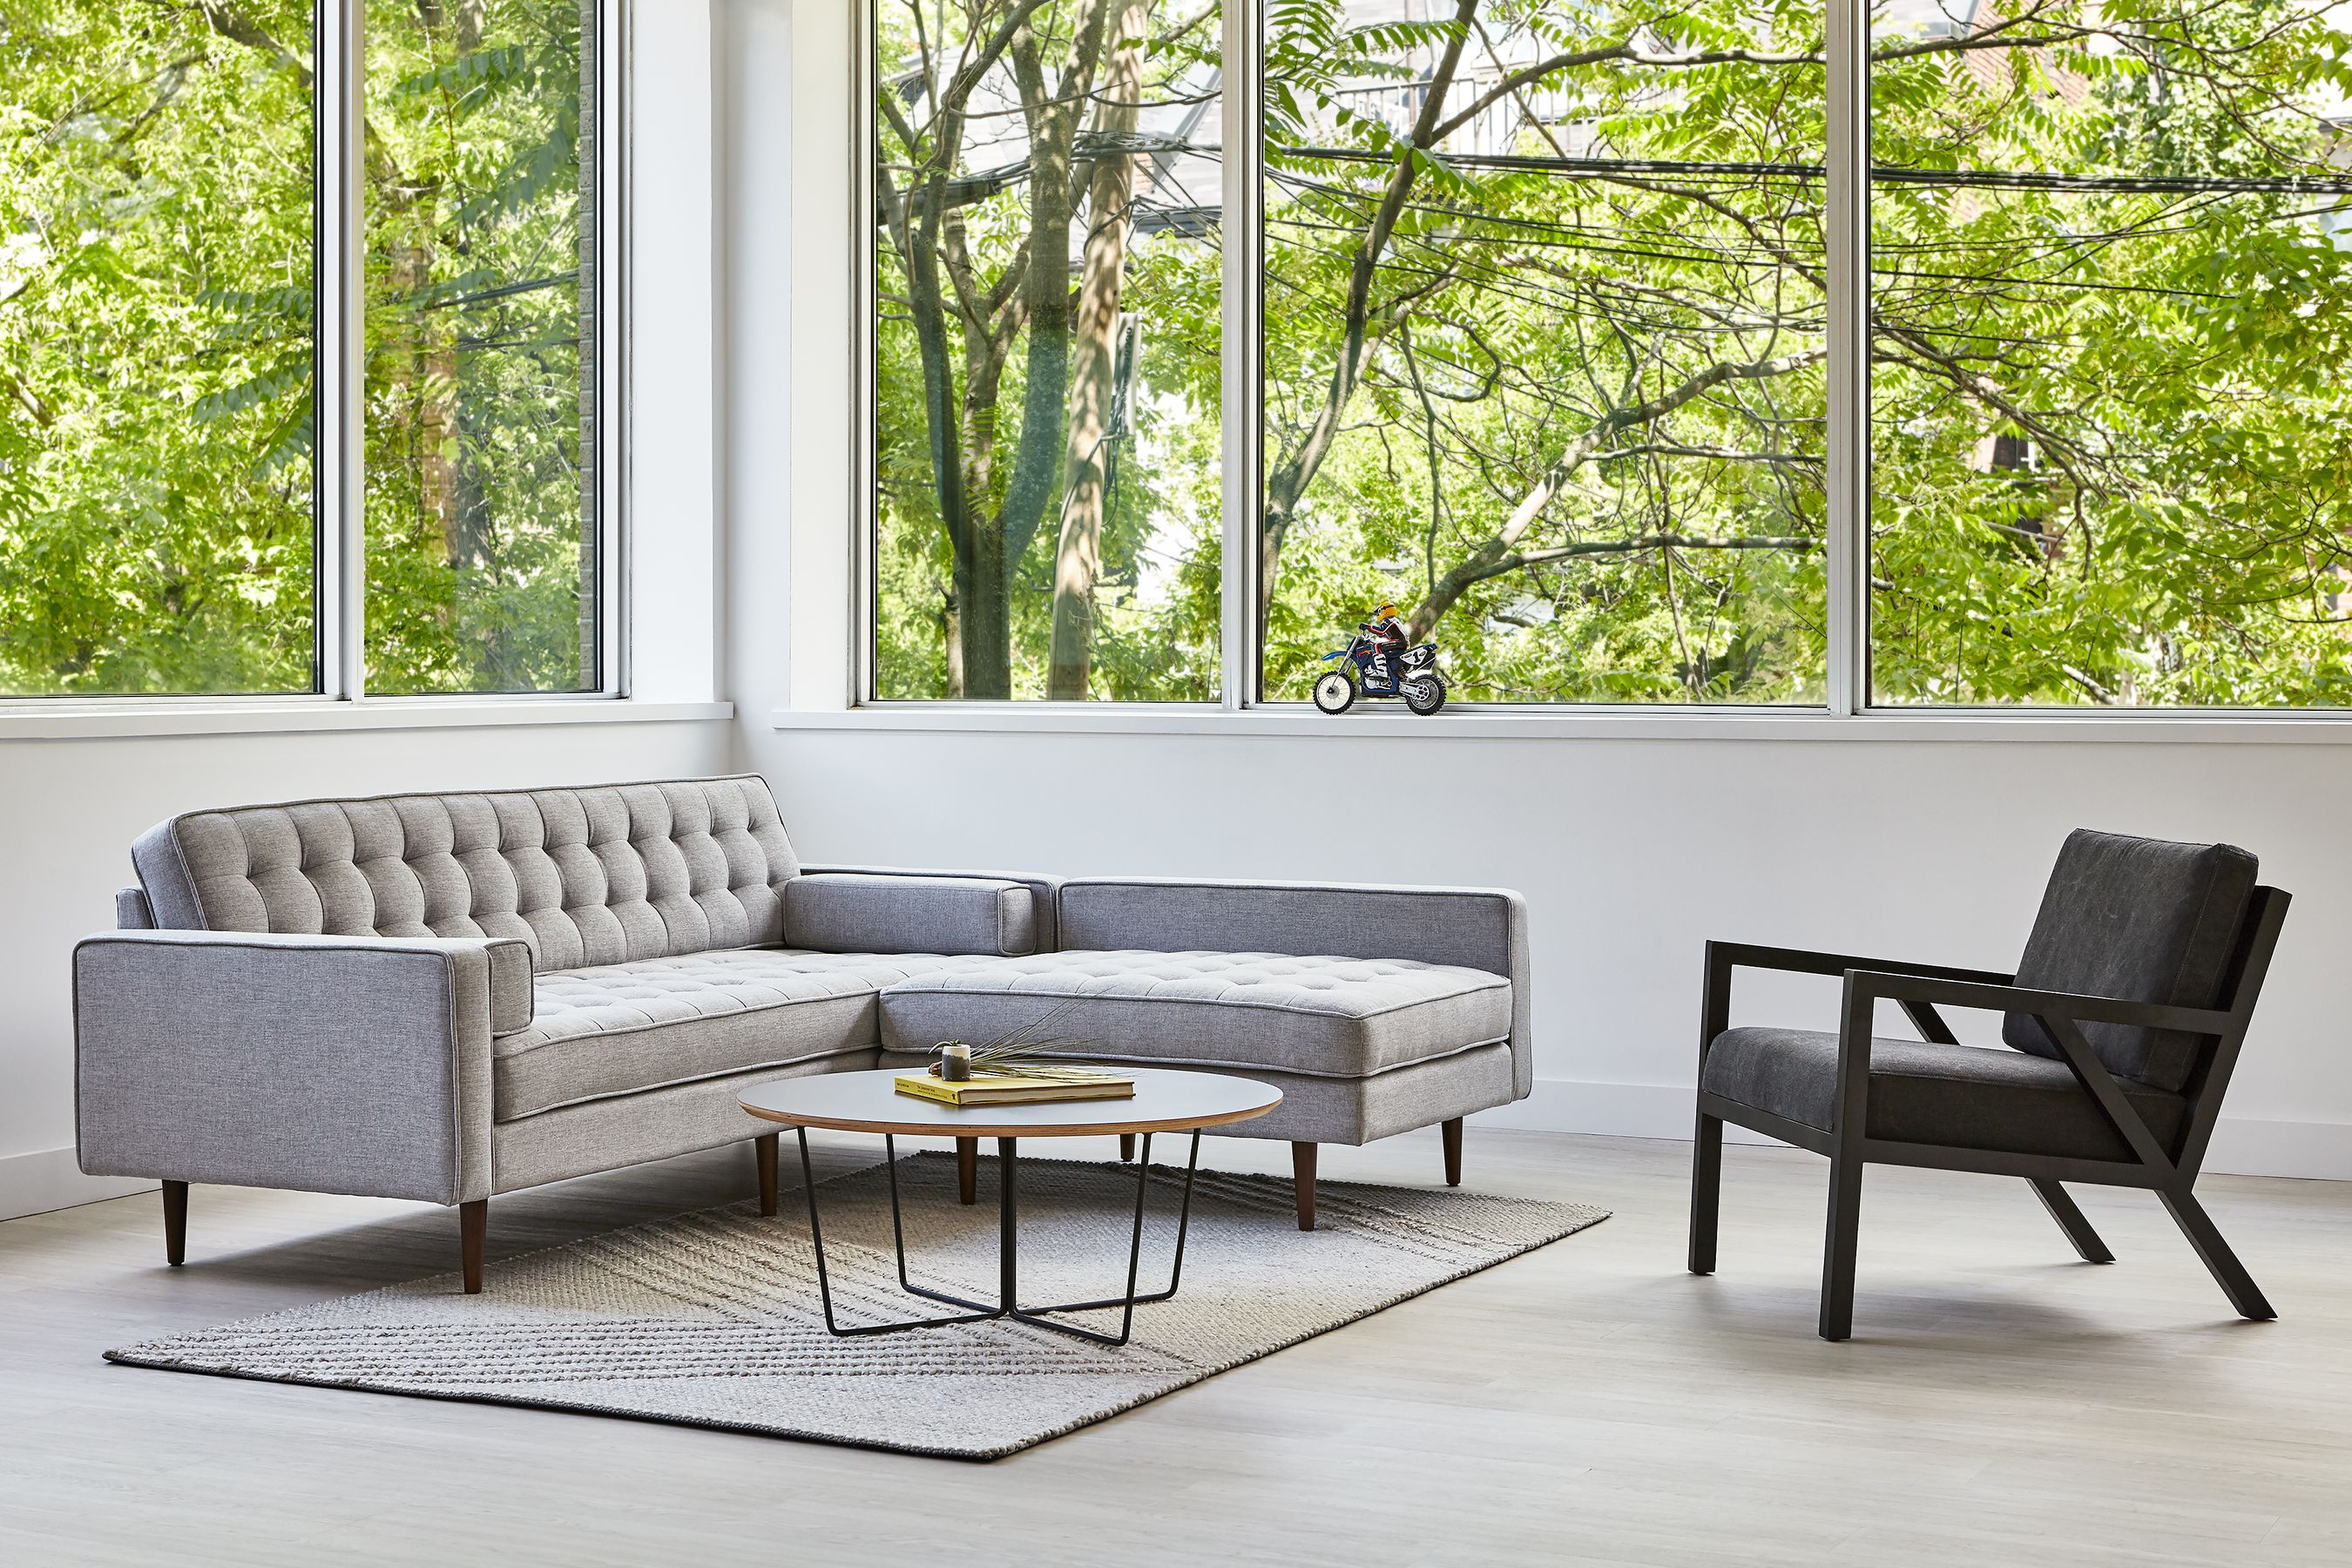 Spencer Bi Sectional Truss Chair Array Coffee Table & Avro Rug